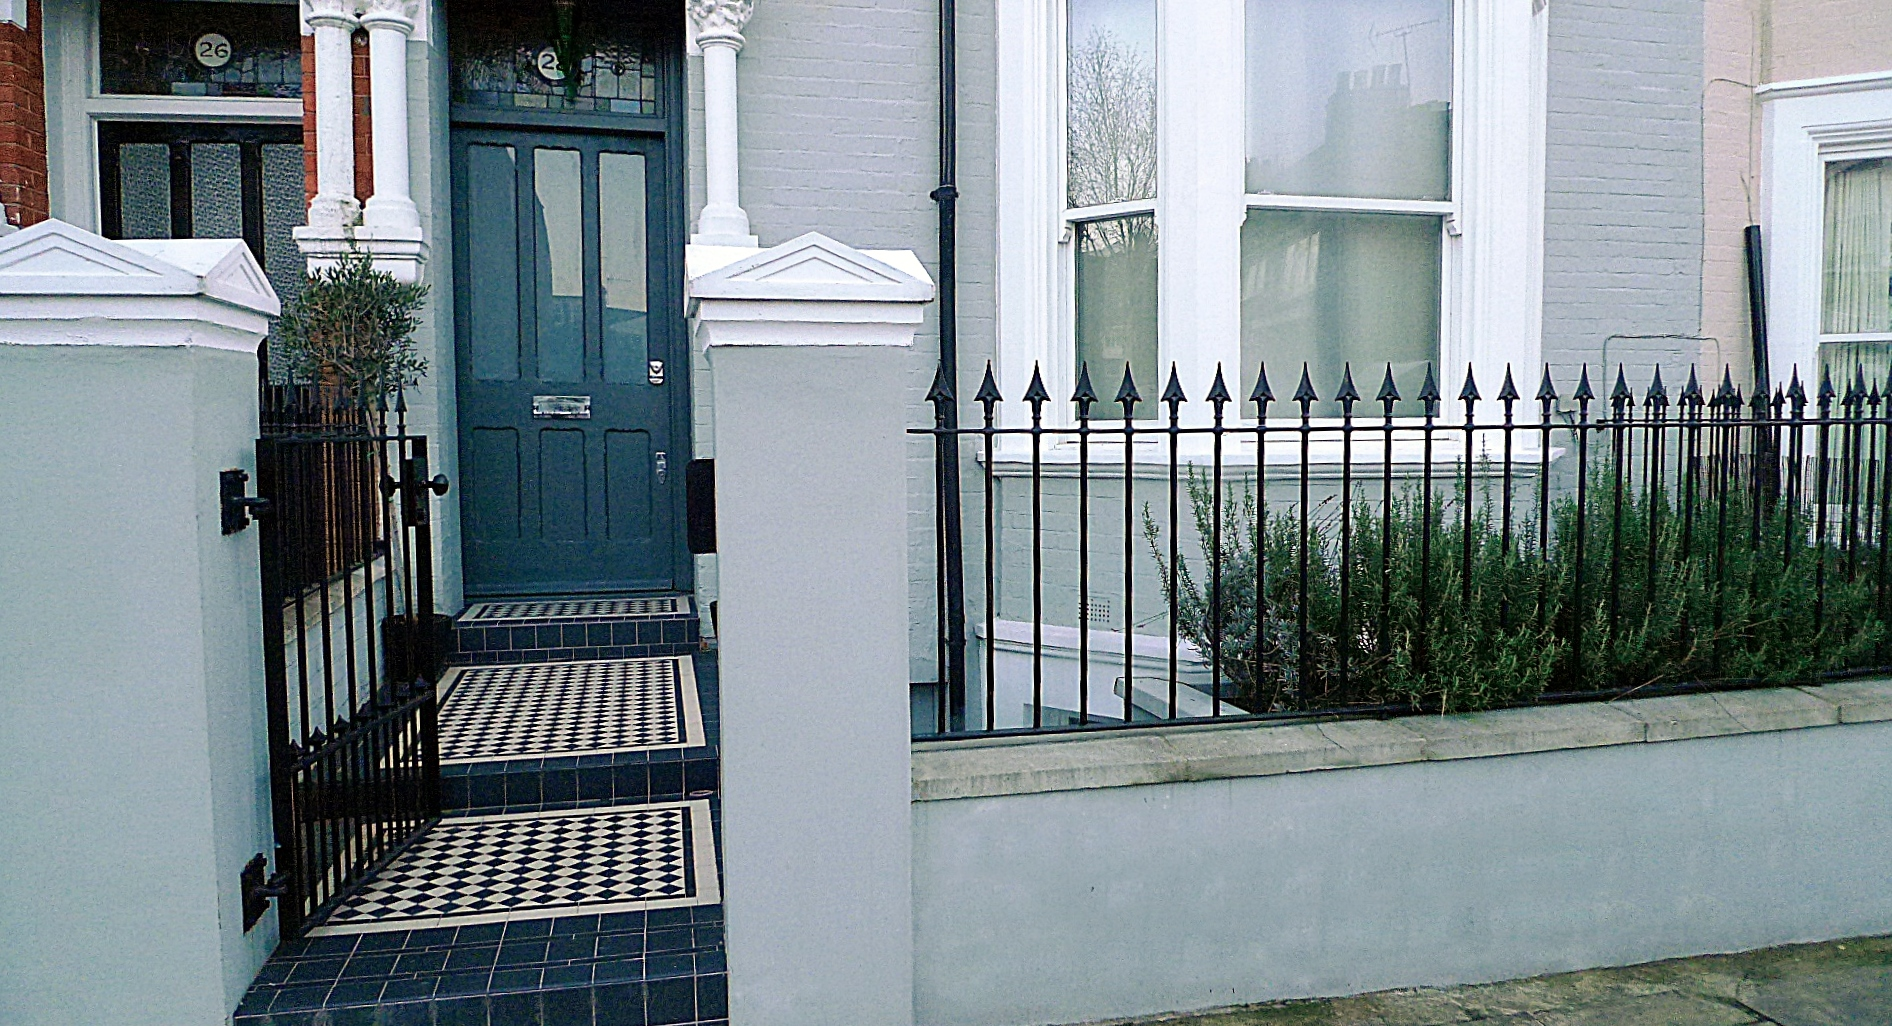 Victorian Mosaic Tile Path Wall Rail Gate Grey Theme Kensington Fulham Chelsea London (2)